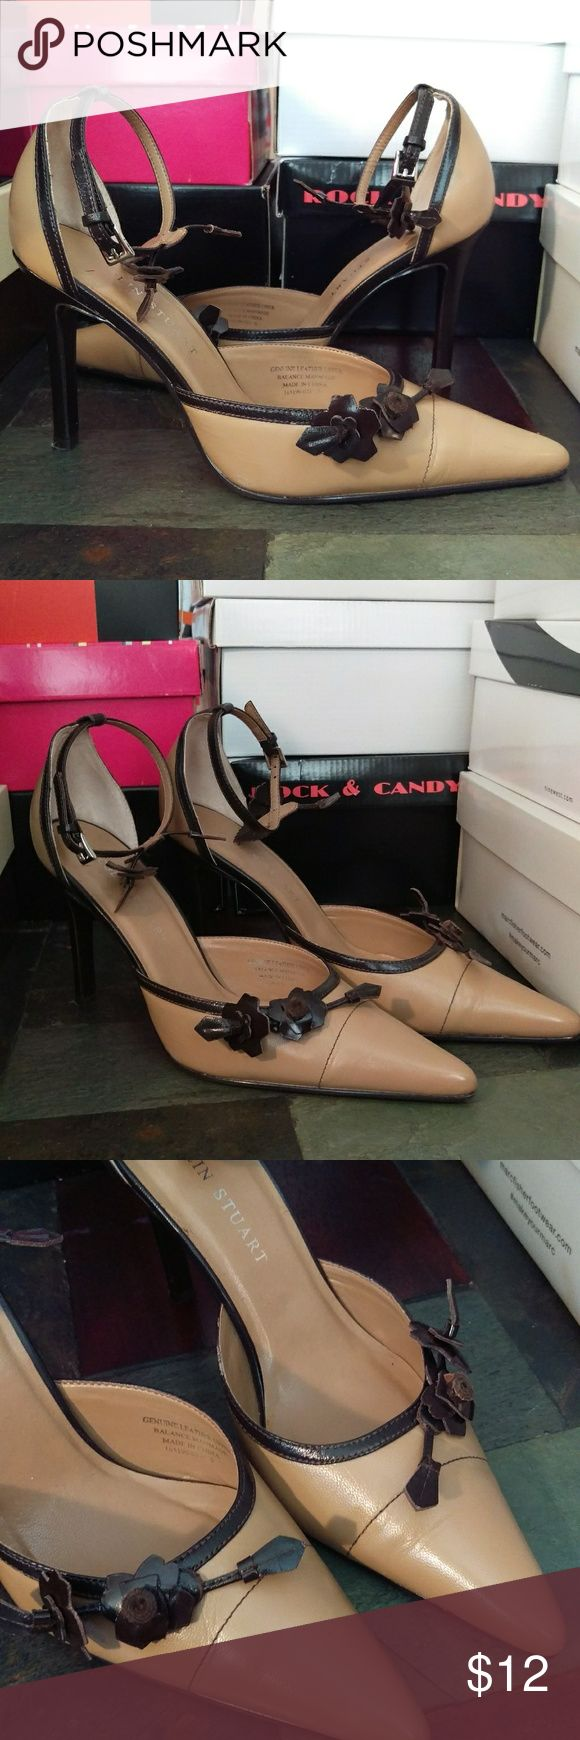 Pointed Toe Pumps Colin Stuart tan and brown pointed toe pumps. Floral detail on ankle strap and top of shoe. Worn once, no large visible scuff marks. Minor wear on heels. Colin Stuart Shoes Heels